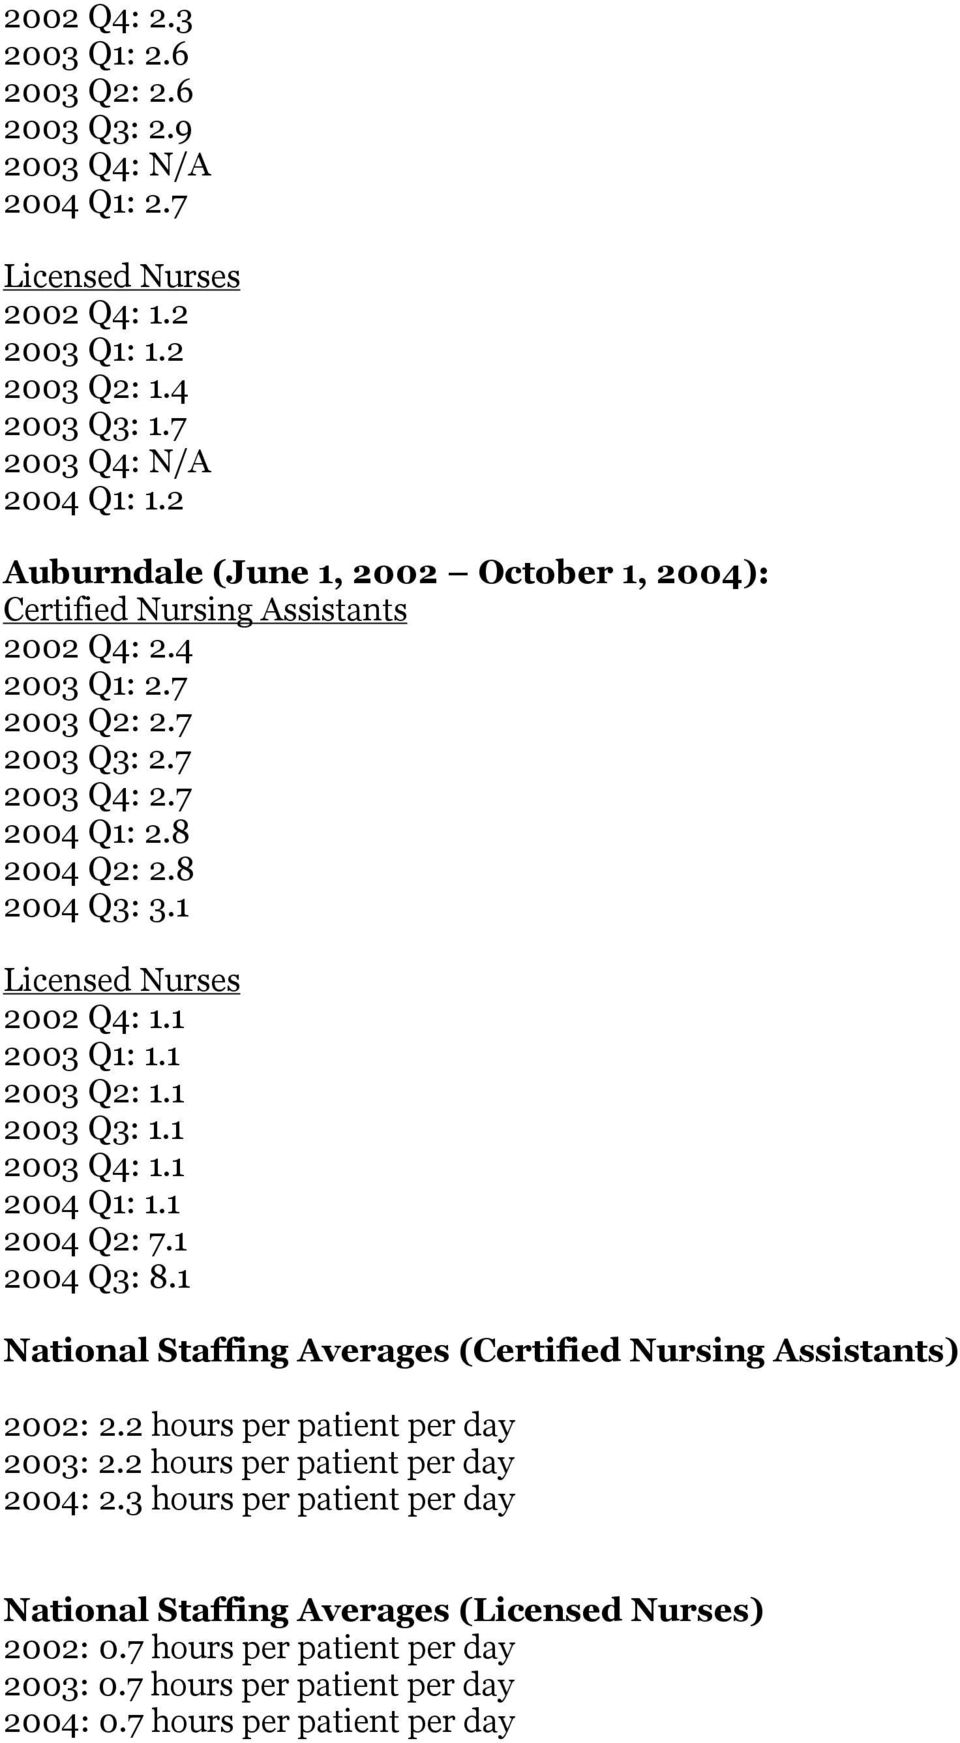 1 Licensed Nurses 2002 Q4: 1.1 2003 Q1: 1.1 2003 Q2: 1.1 2003 Q3: 1.1 2003 Q4: 1.1 2004 Q1: 1.1 2004 Q2: 7.1 2004 Q3: 8.1 National Staffing Averages (Certified Nursing Assistants) 2002: 2.